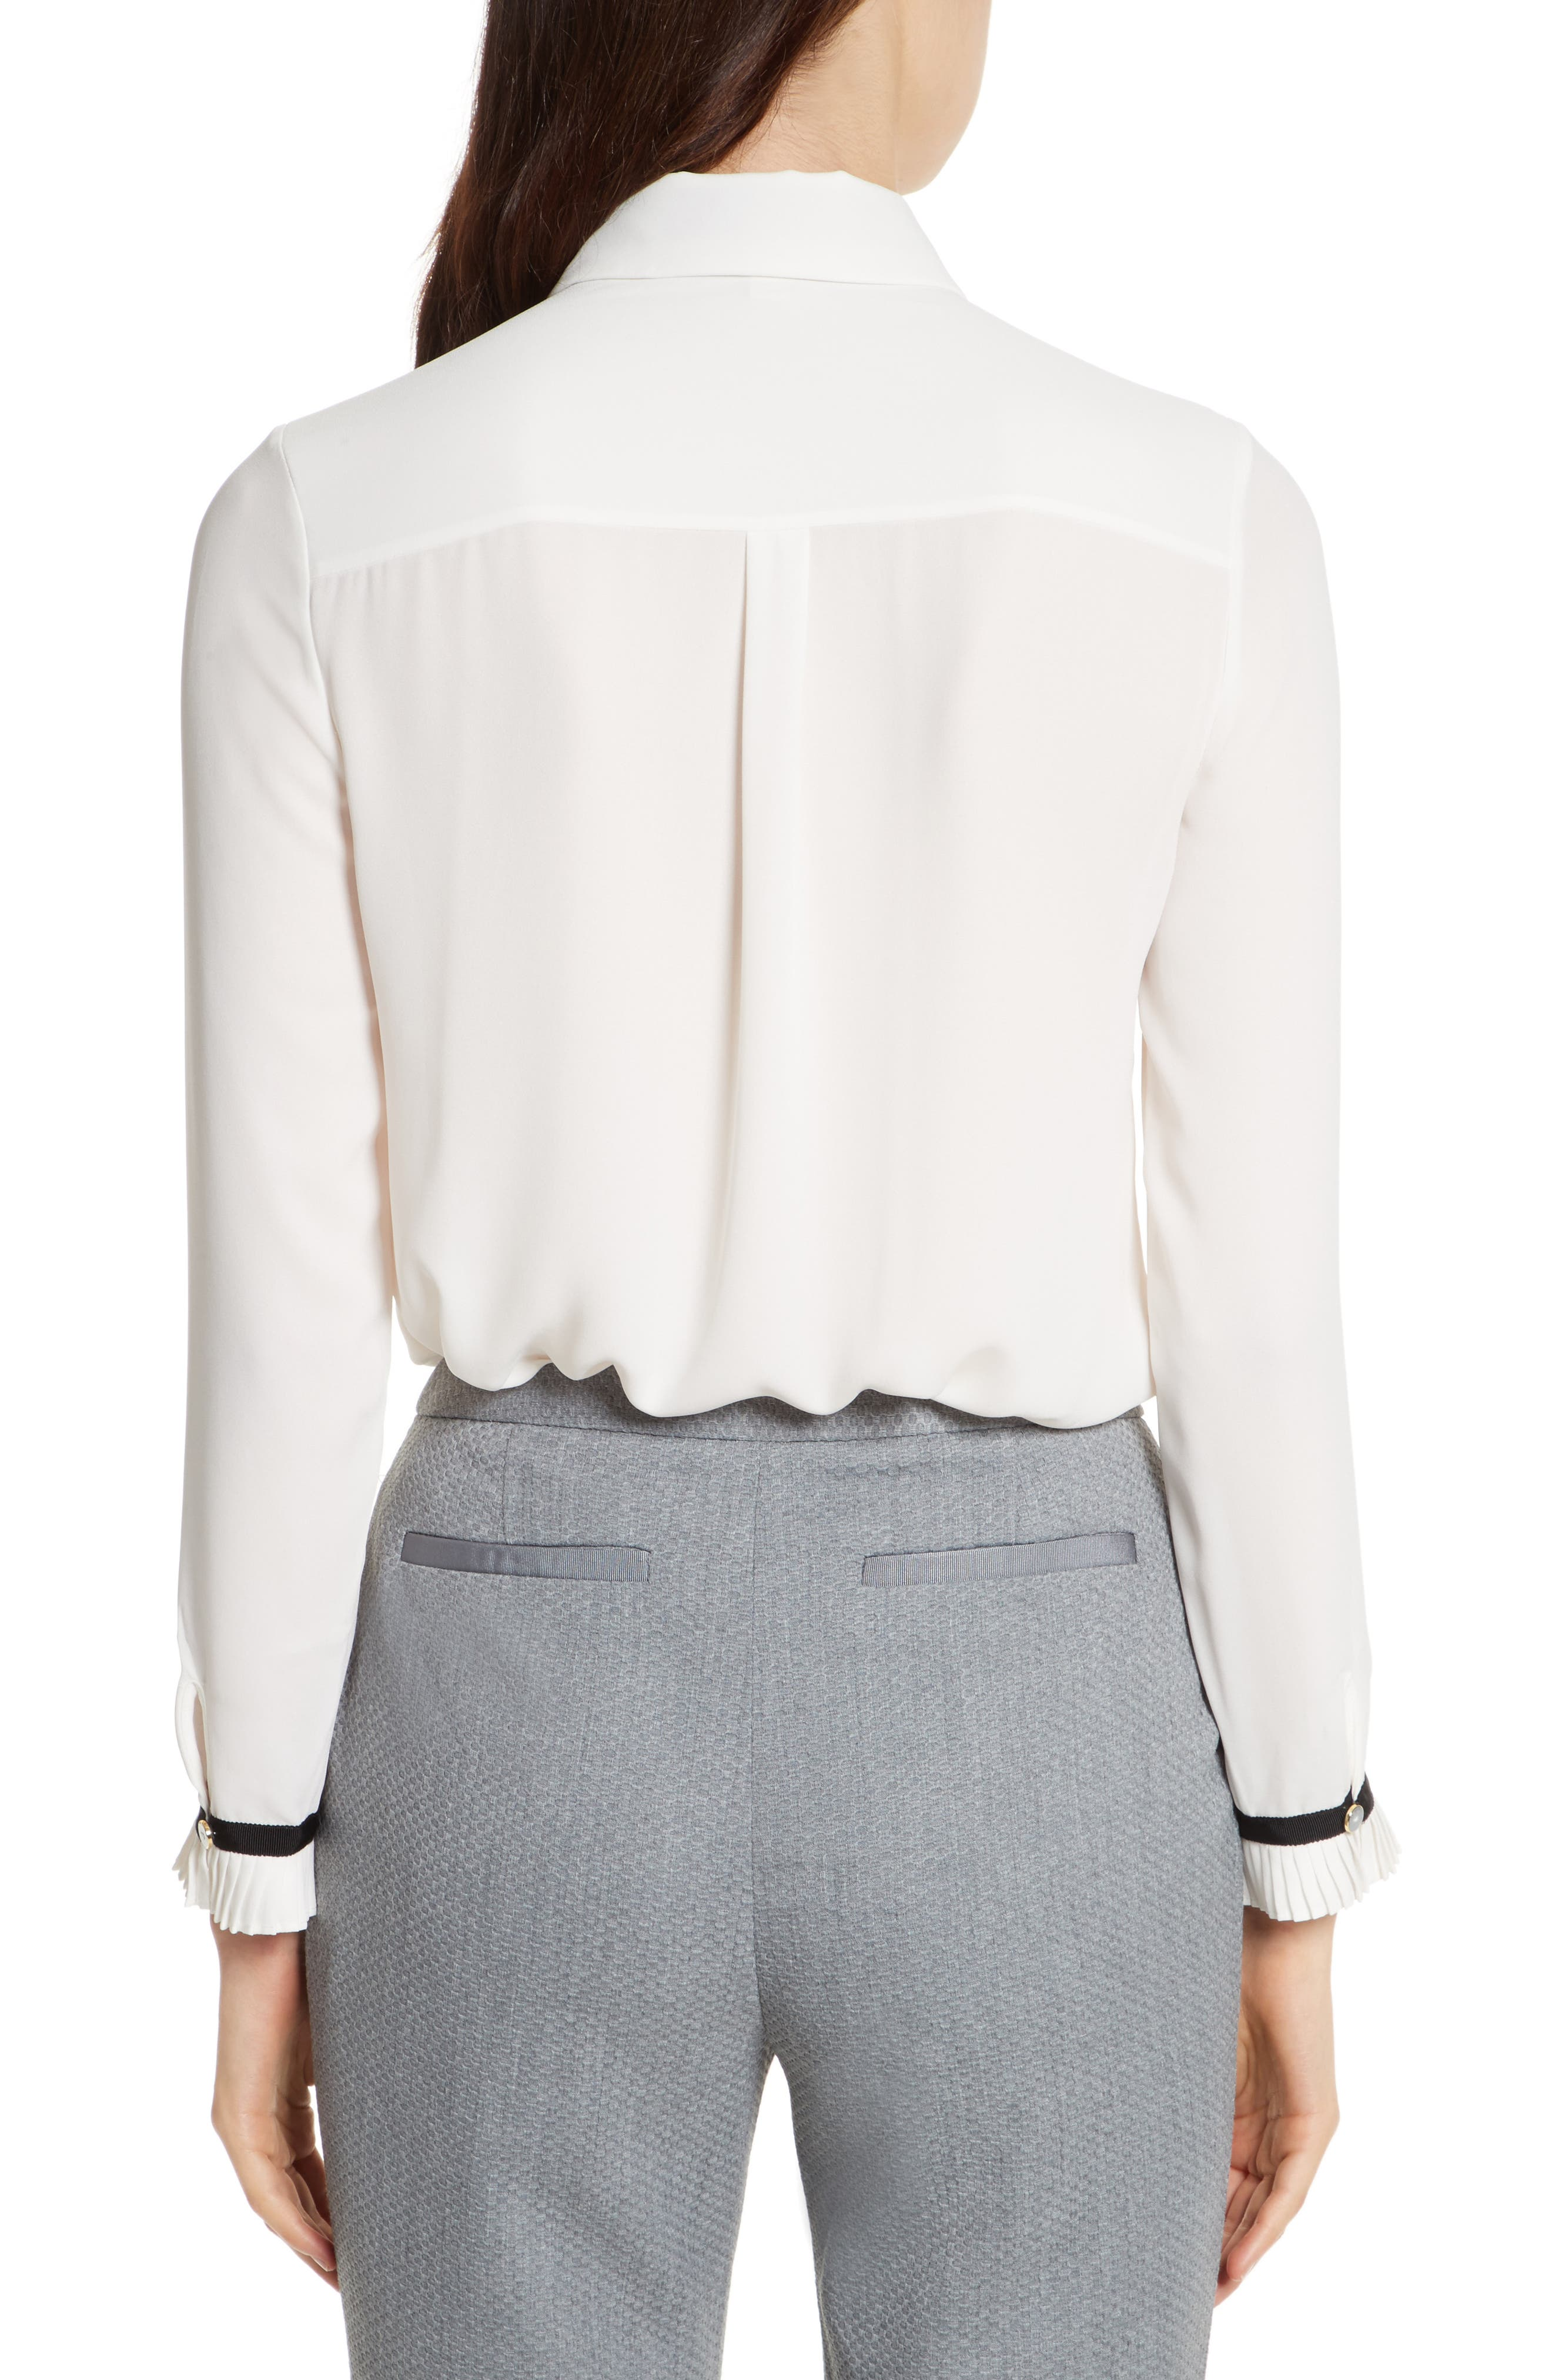 Alternate Image 3  - Ted Baker London Pleated Frill Tie Neck Shirt